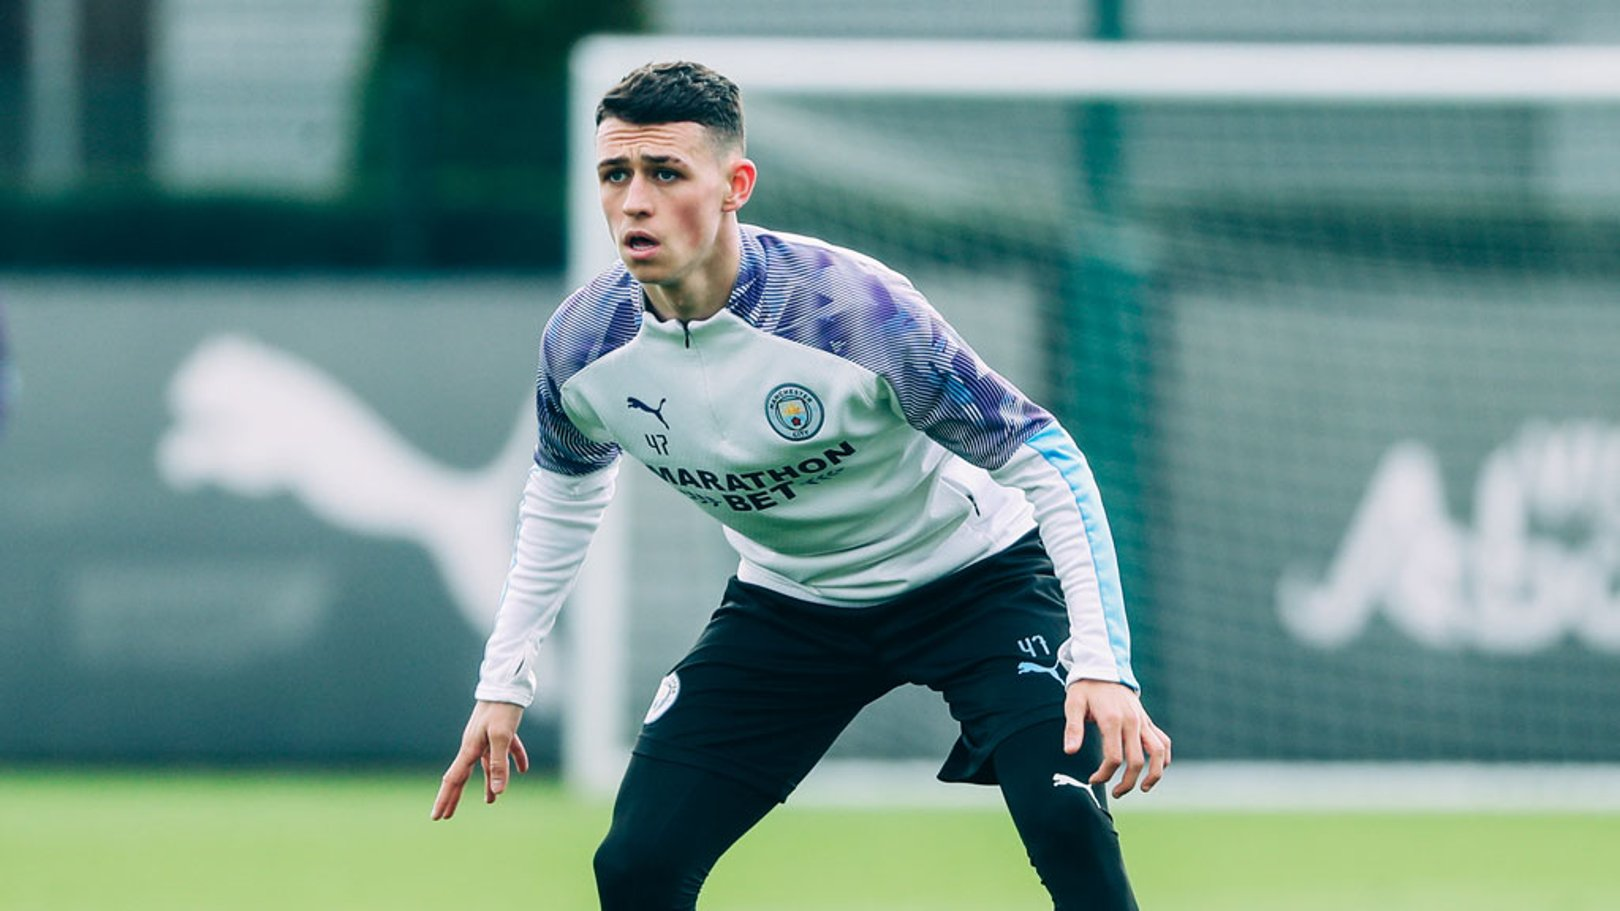 Phil Foden training 11 March